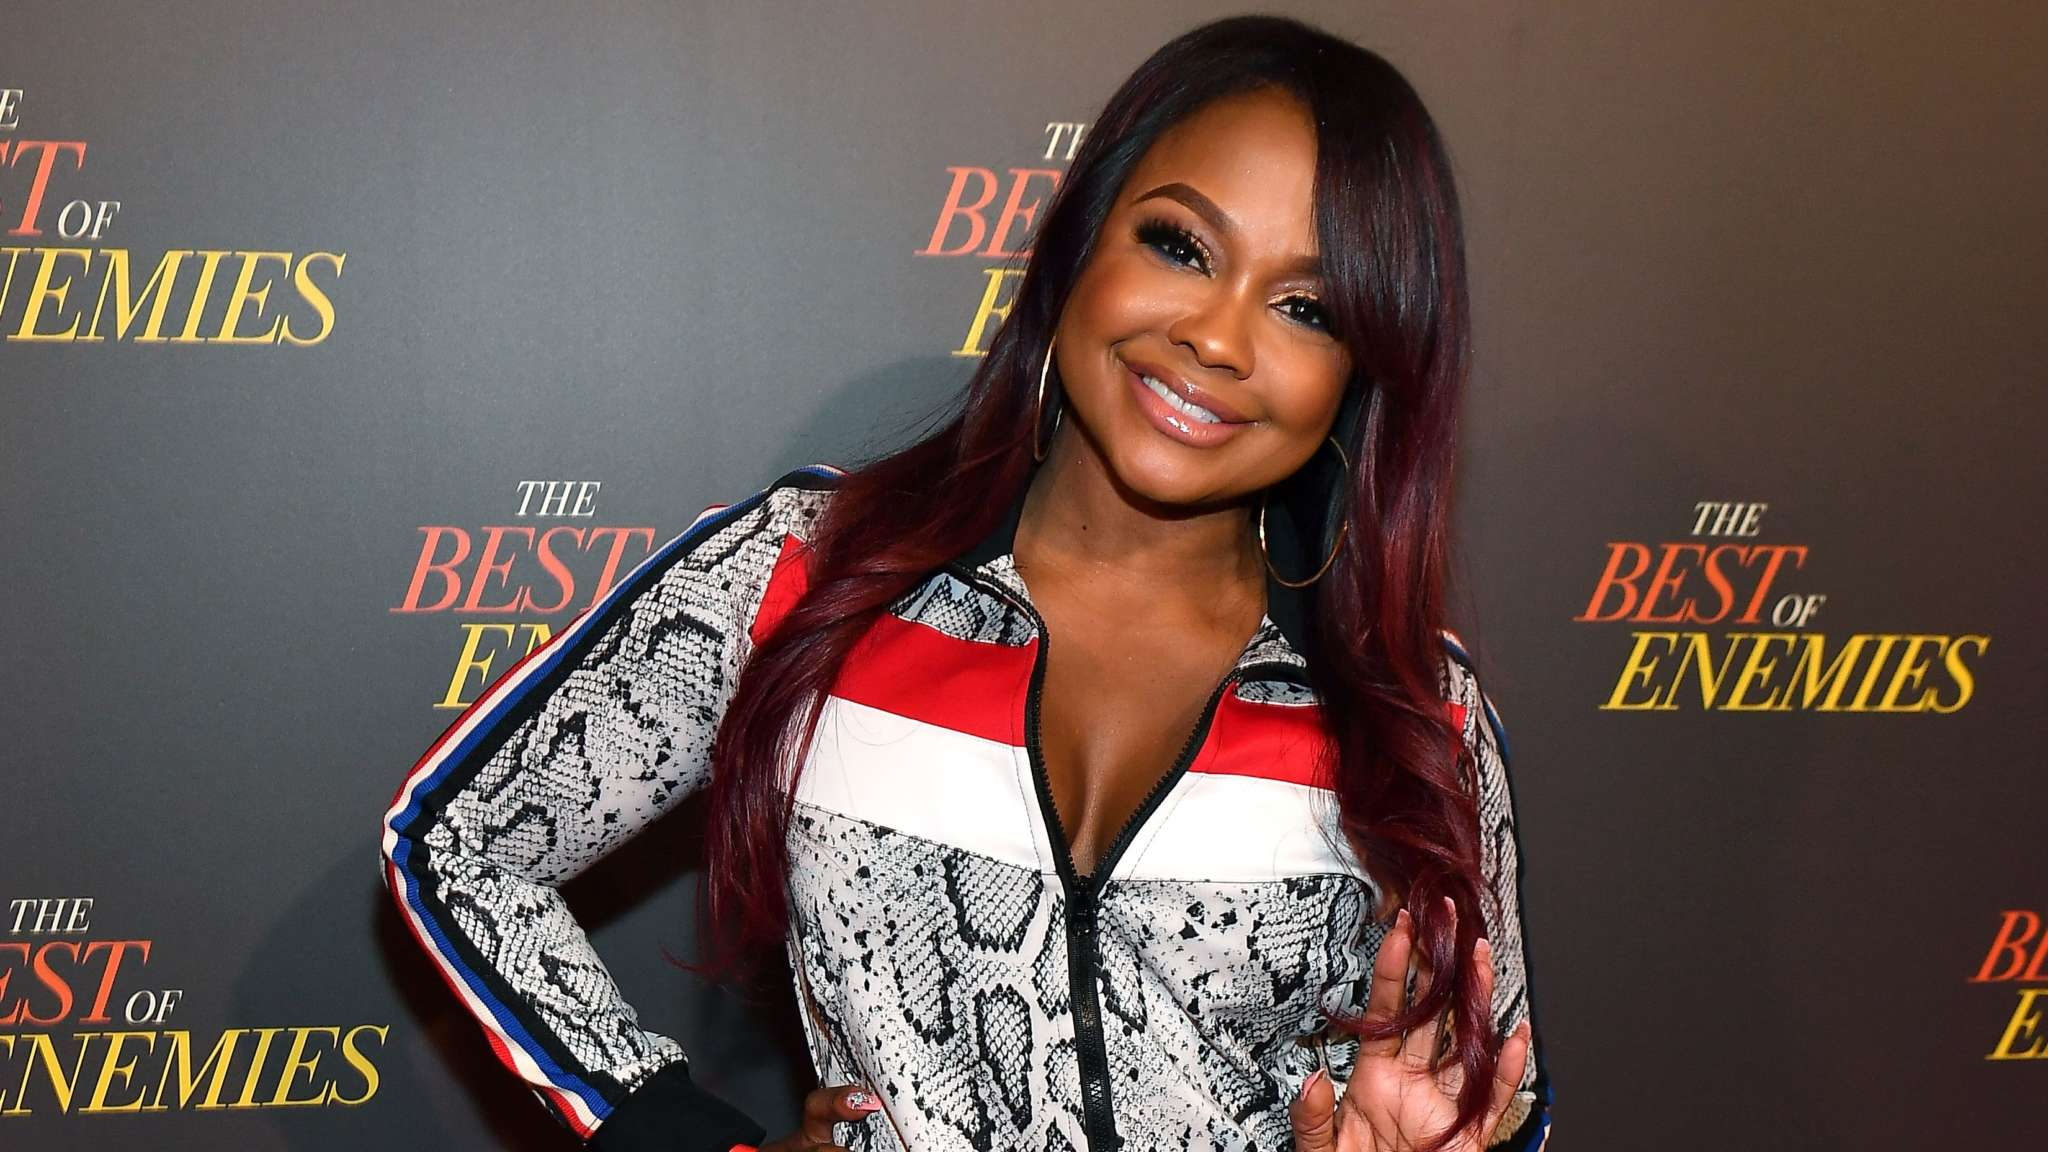 Phaedra Parks Tells Fans That Protesting Is Only The Beginning